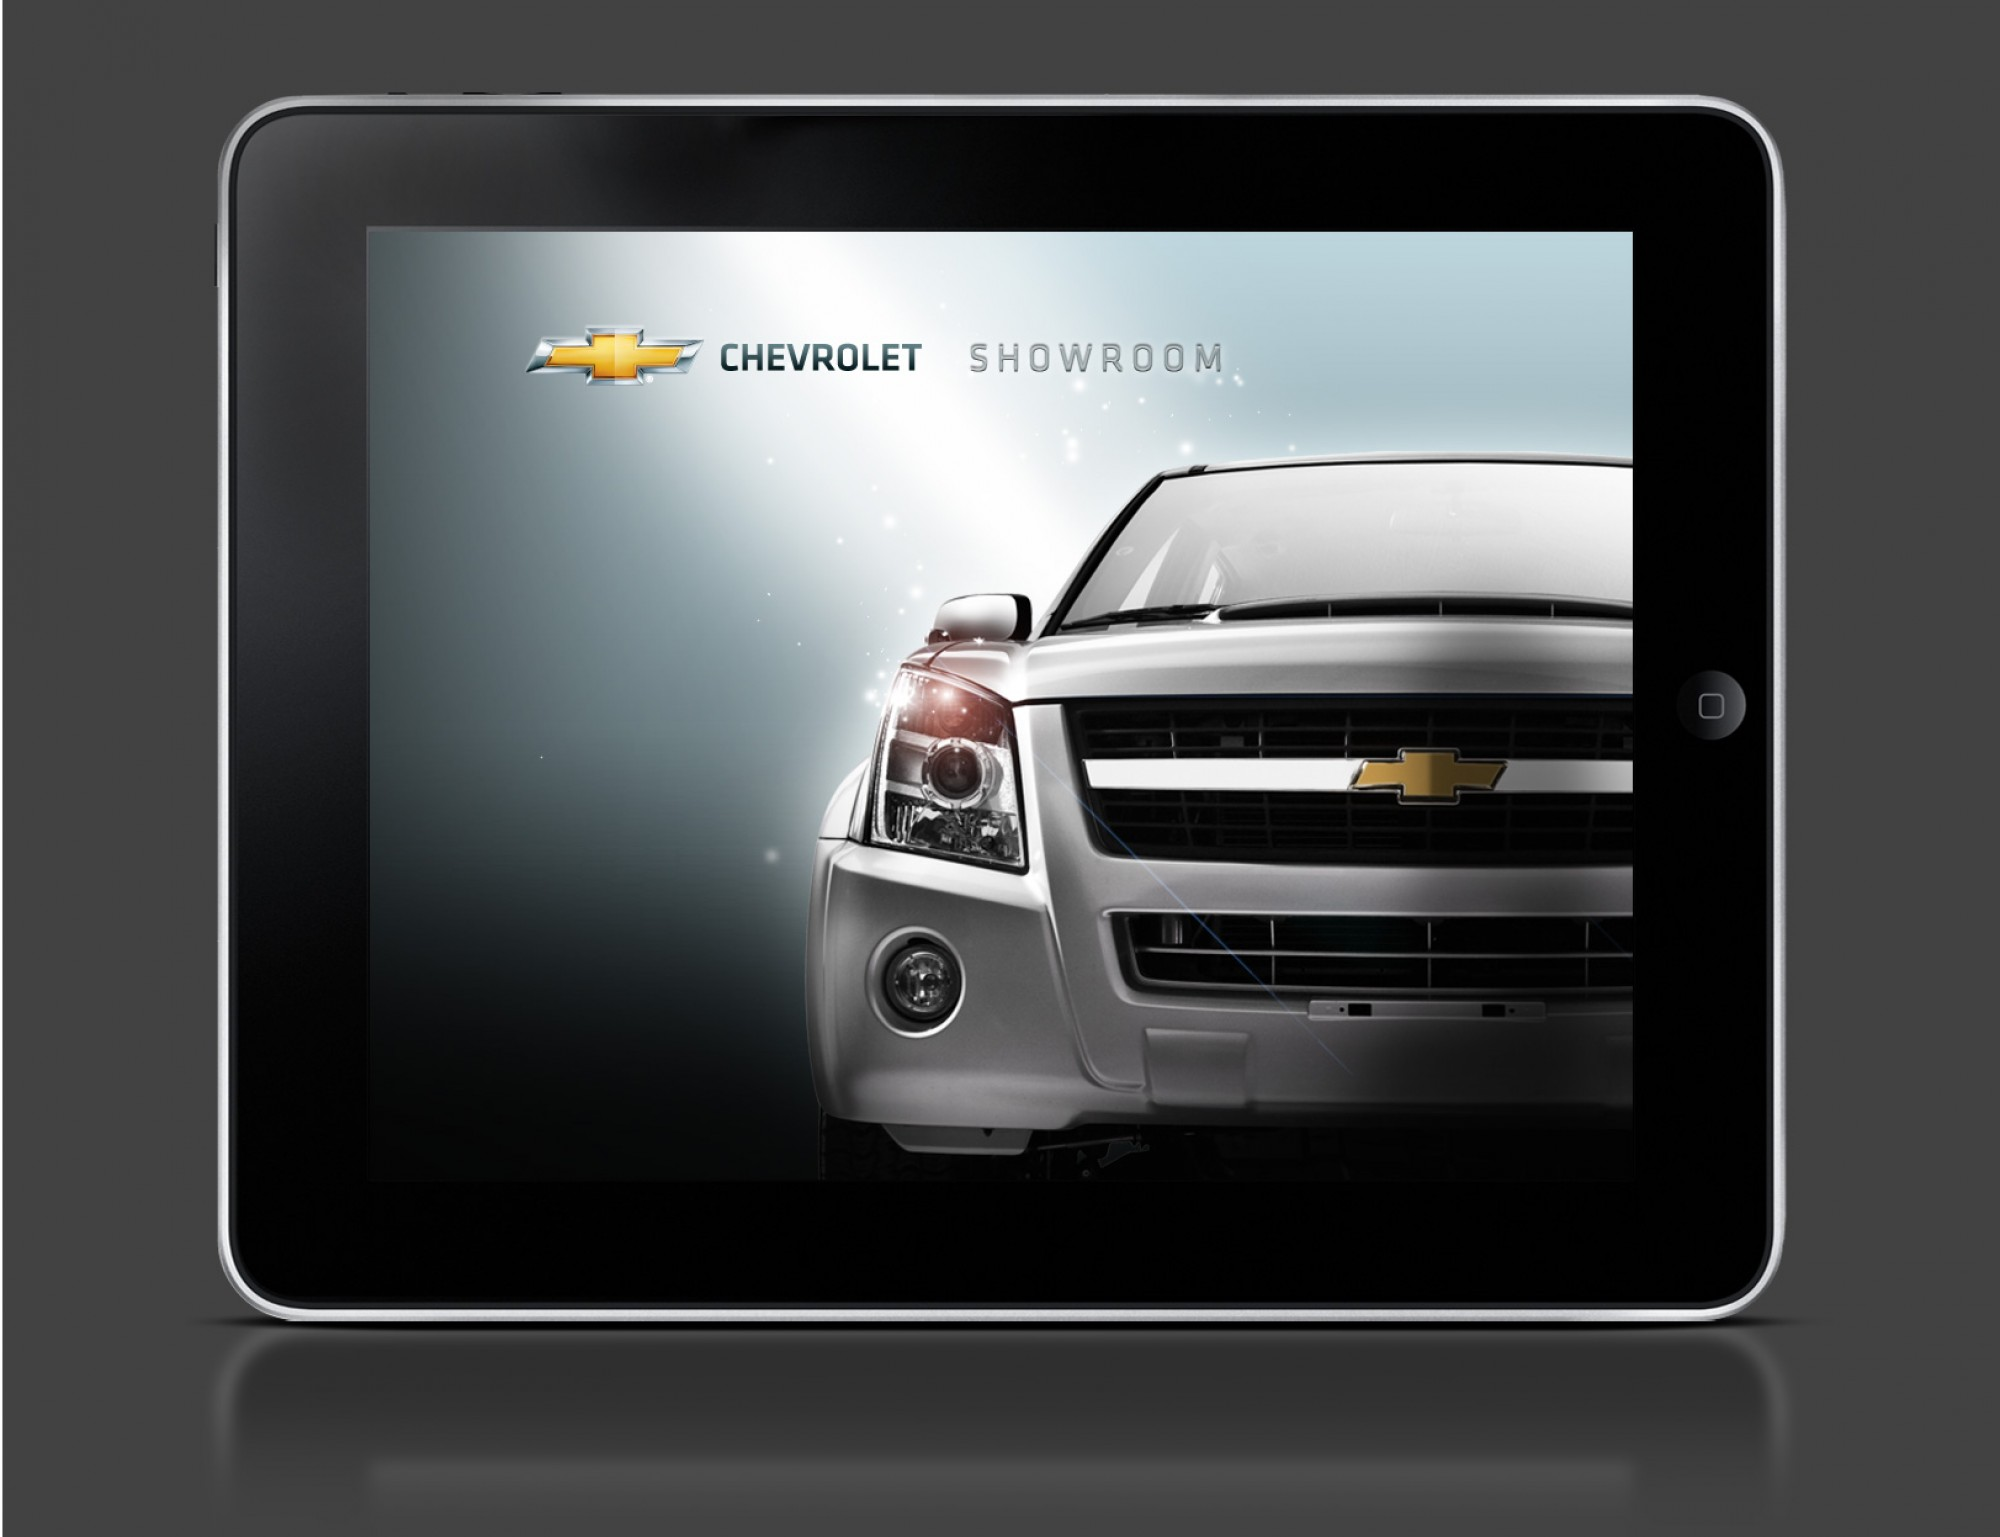 chevy_ipad_land_comp02b